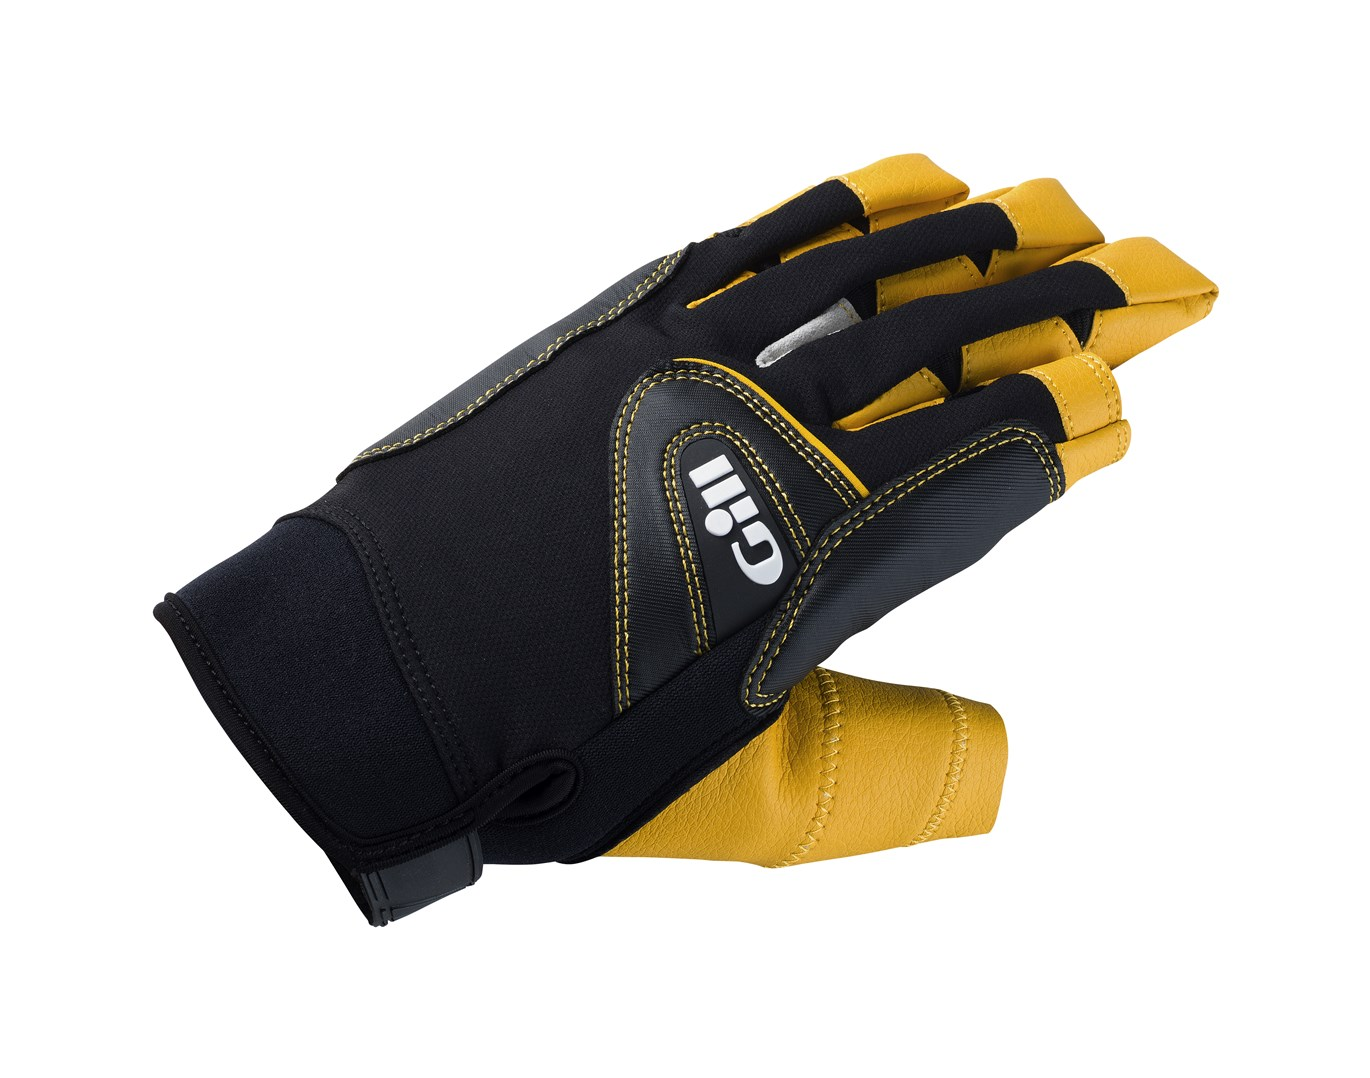 7452_Pro Gloves_Long Finger_Black_1.jpg